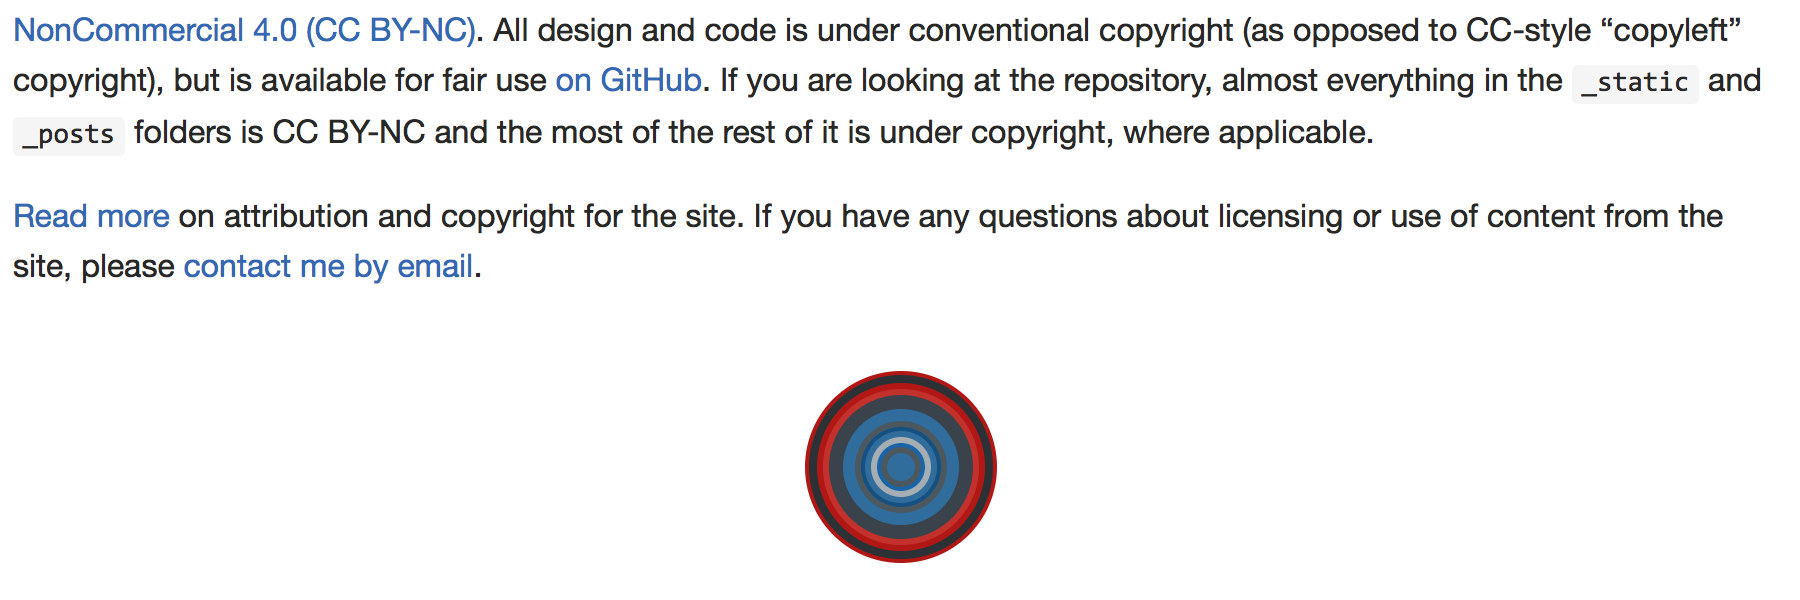 circular logo below readme text as rendered on a GitHub project page